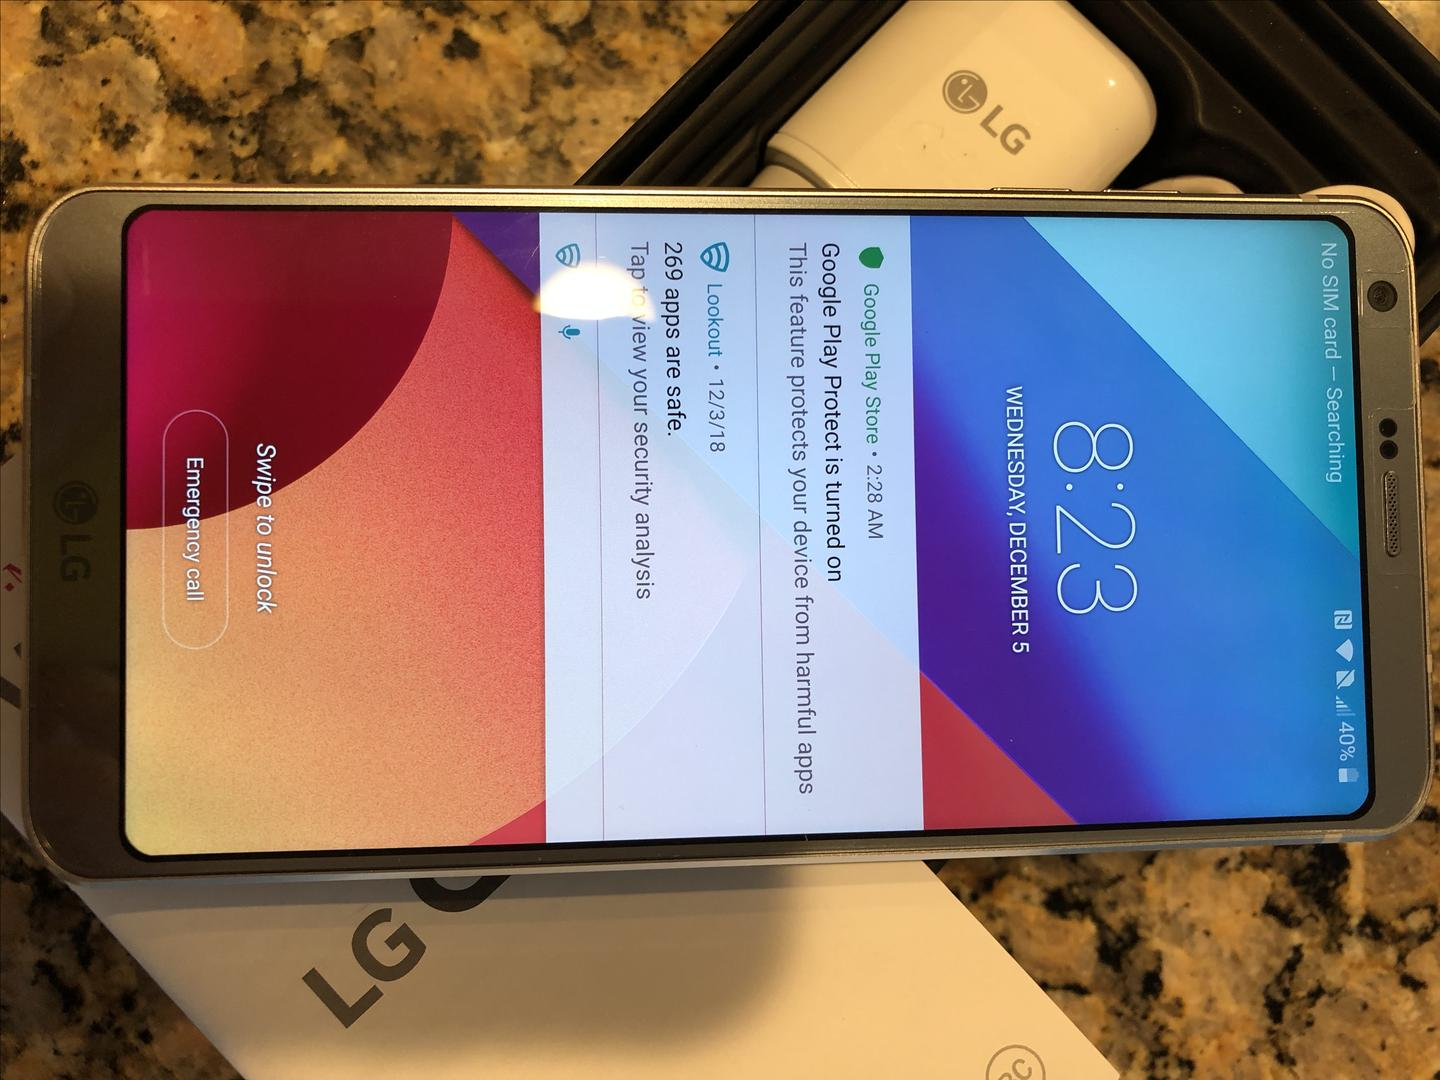 LG G6 (T-Mobile) [H872] - Silver, 32 GB, 4 GB